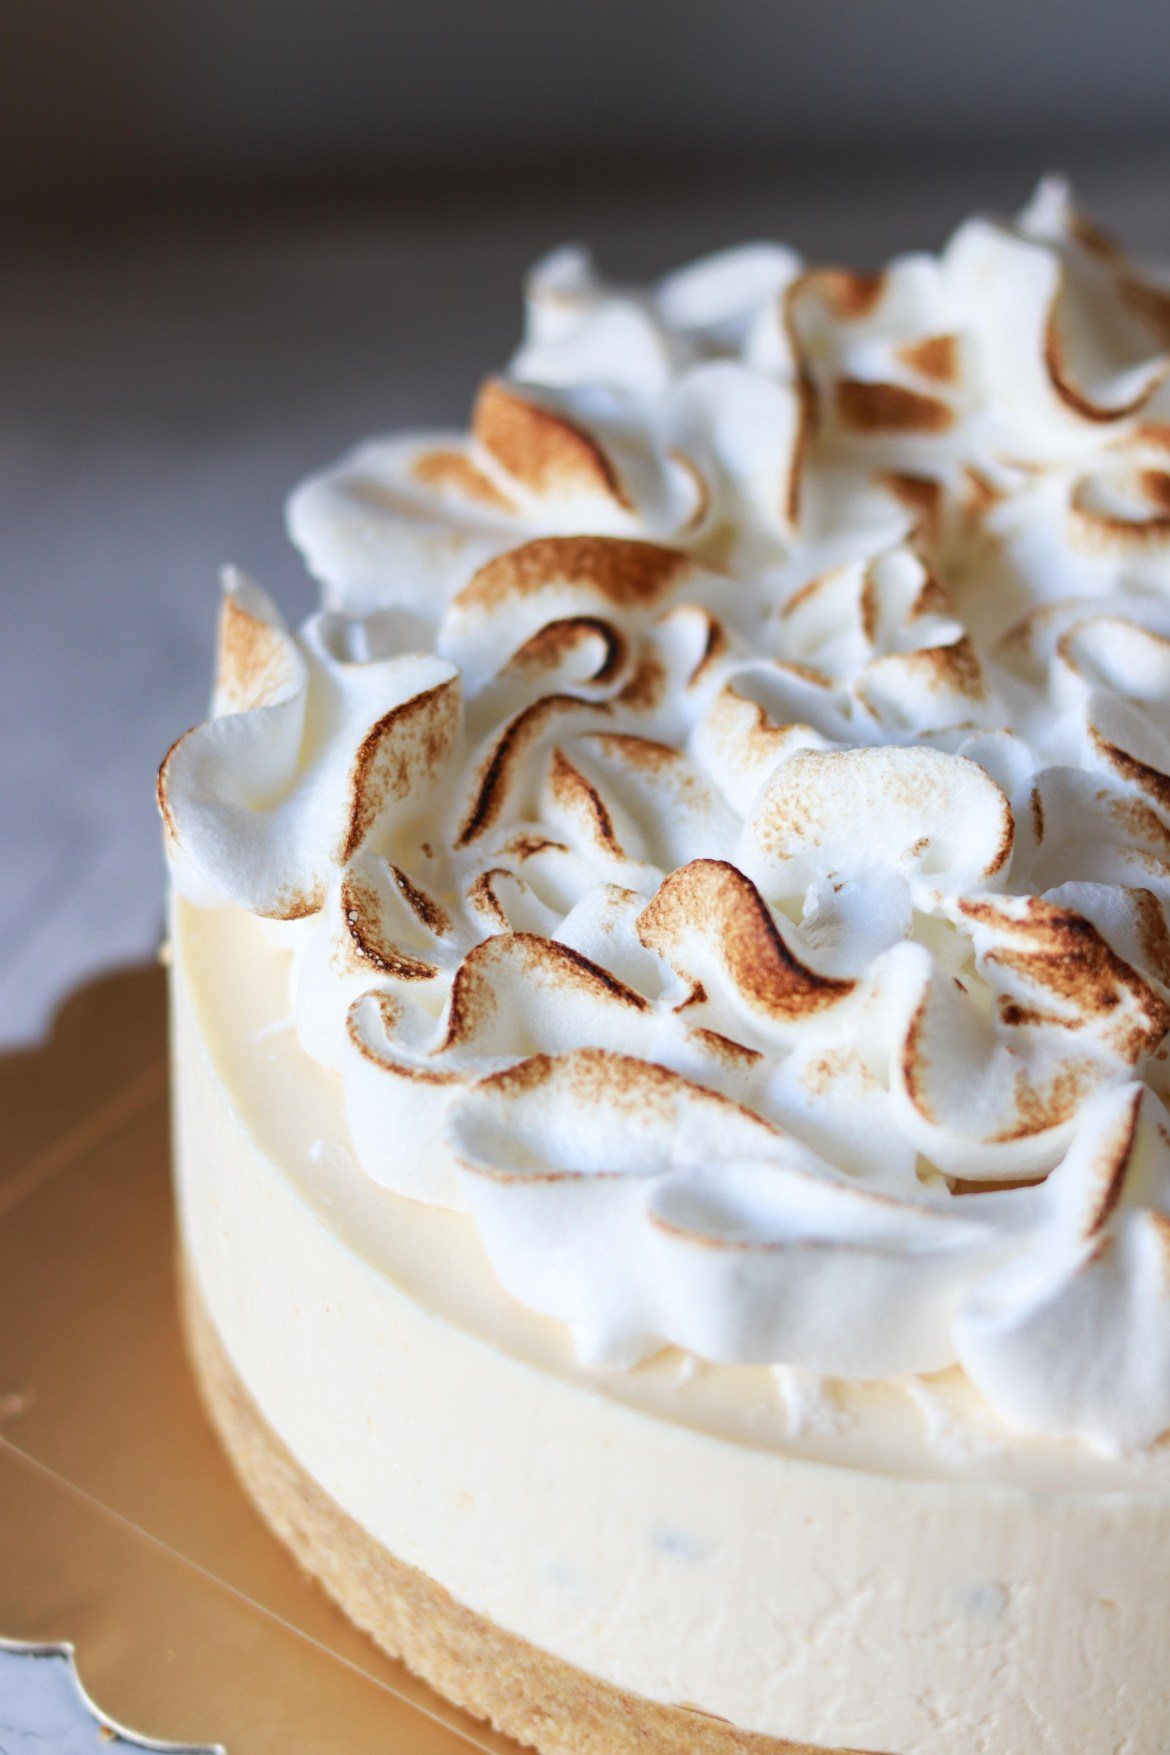 Ginger Passionfruit Yogurt Cheesecake with Italian Meringue